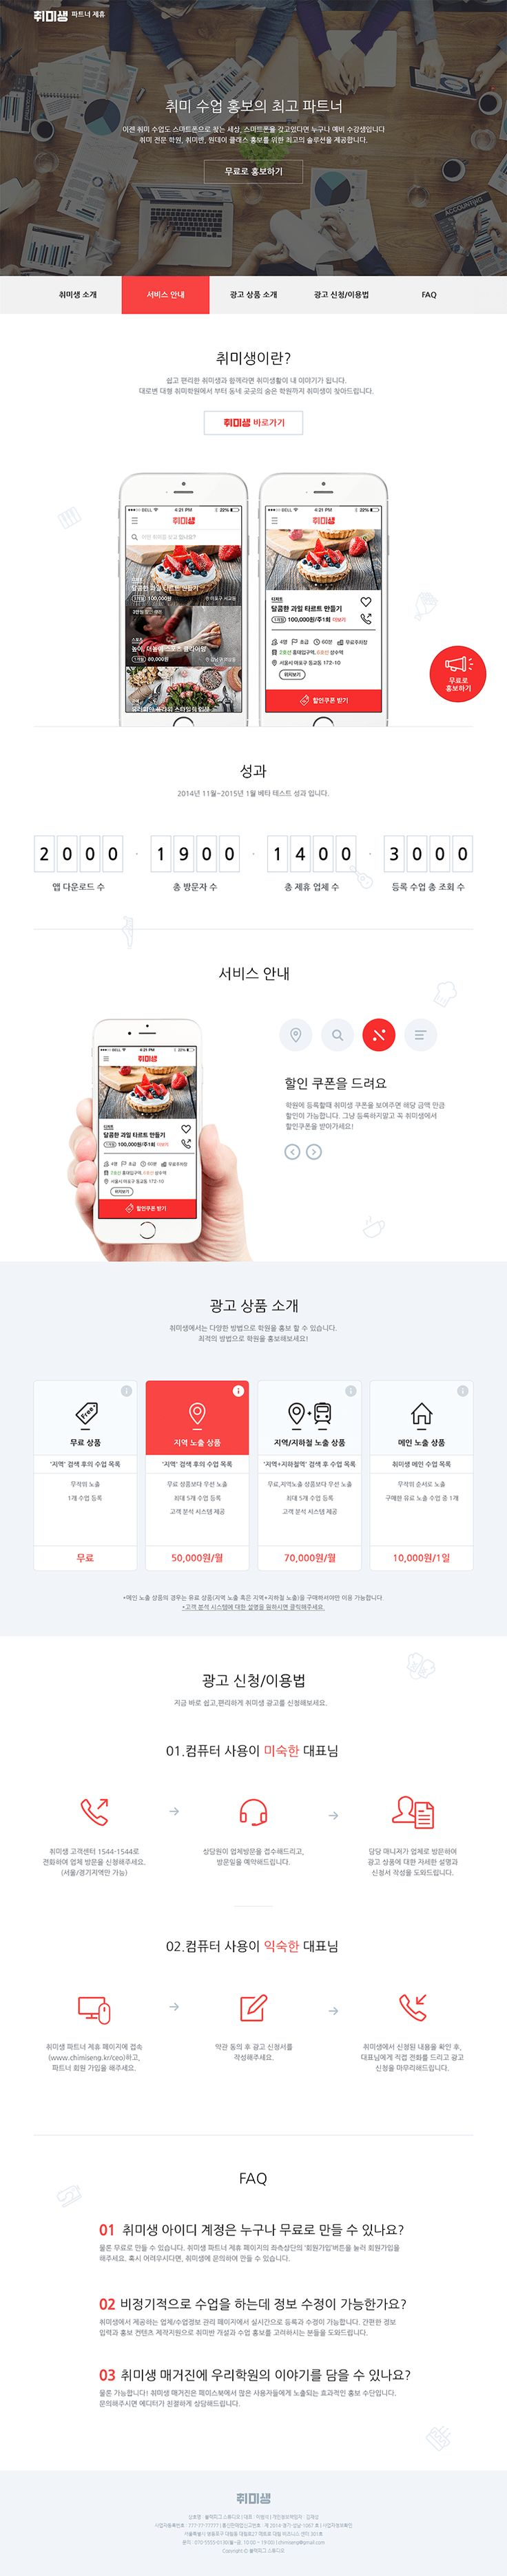 취미생_Partner Page 디자인.  https://www.behance.net/gallery/24763136/_Partner-Page